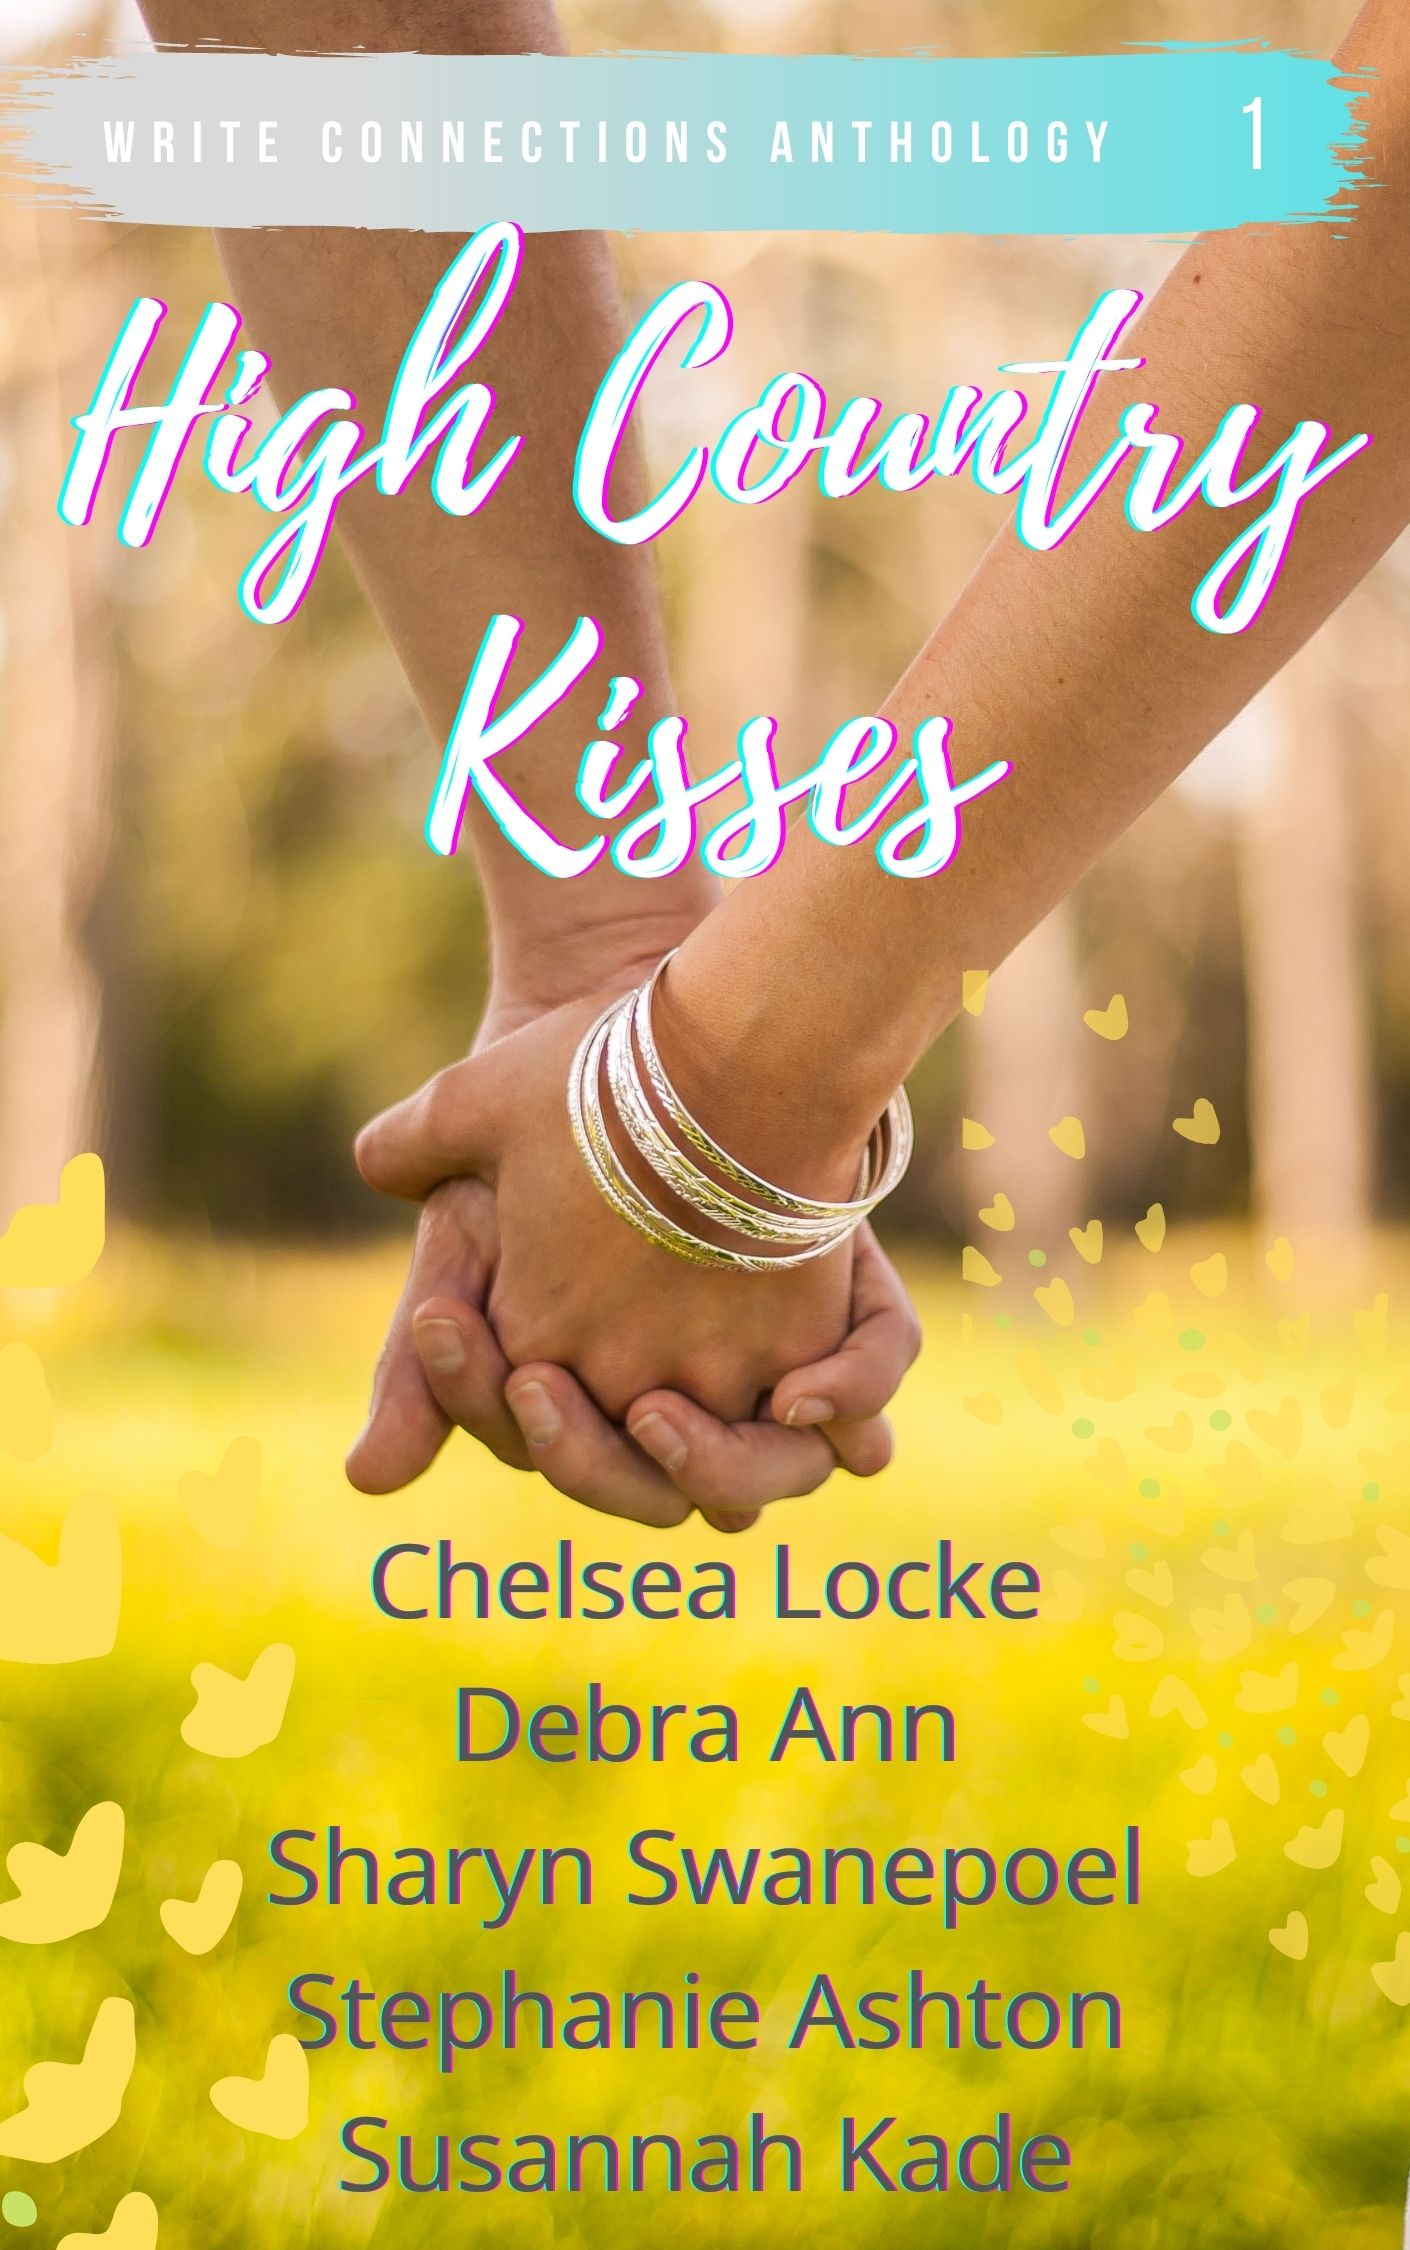 High Country Kisses Book Cover of two people holding hands with a background of yellow flowers in a field